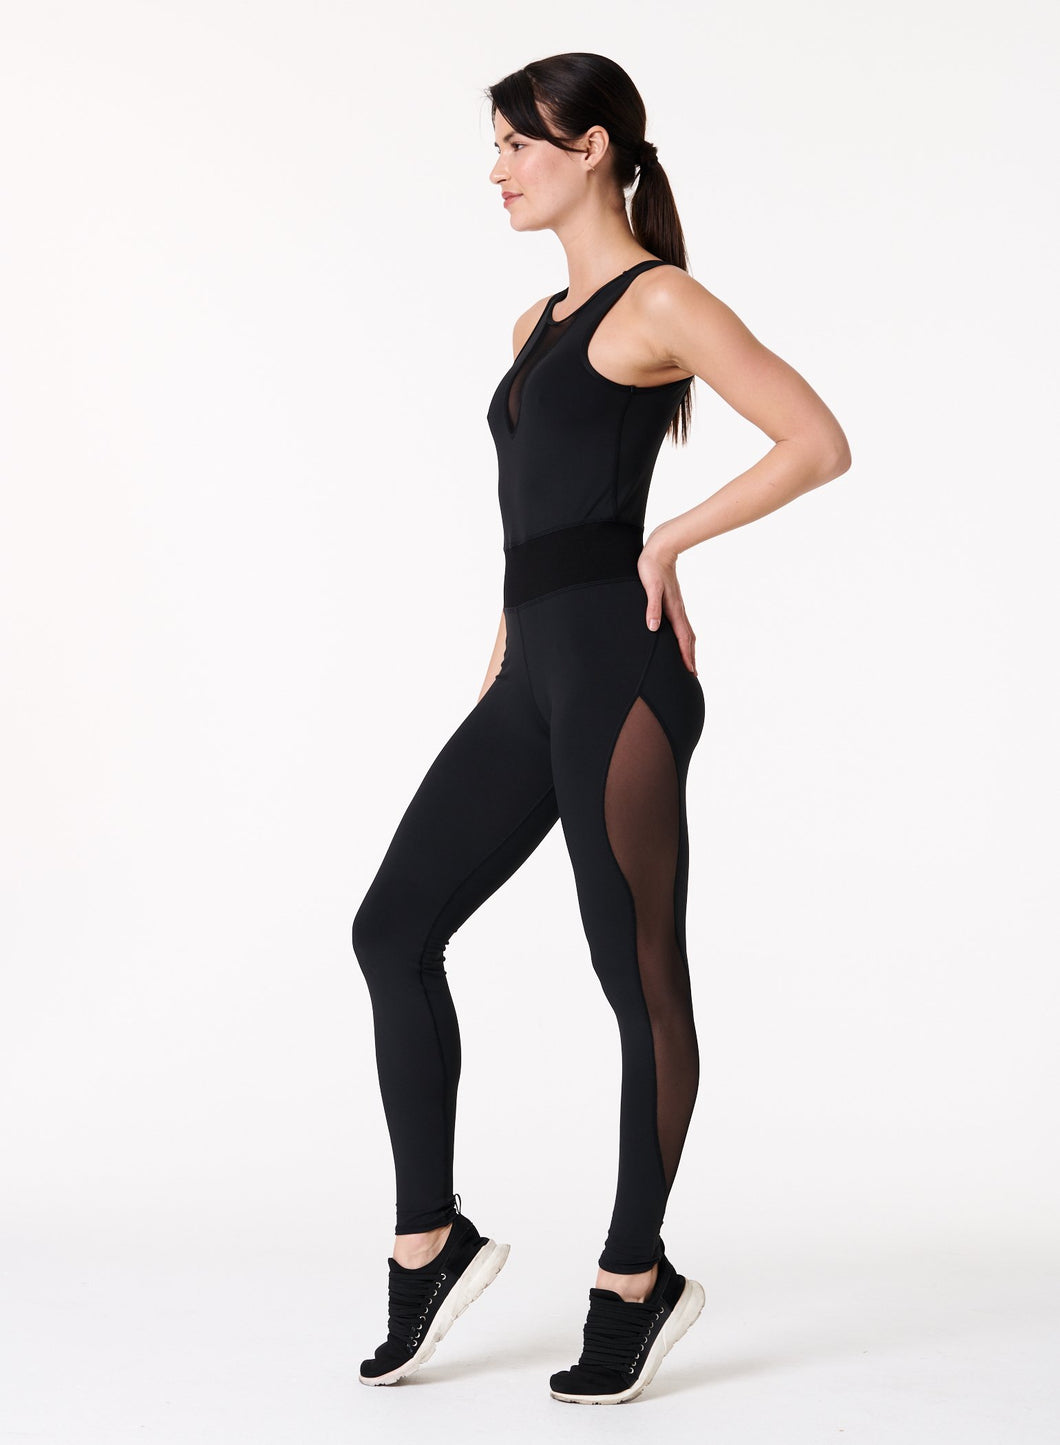 The Limitless Bodysuit by NUX Active